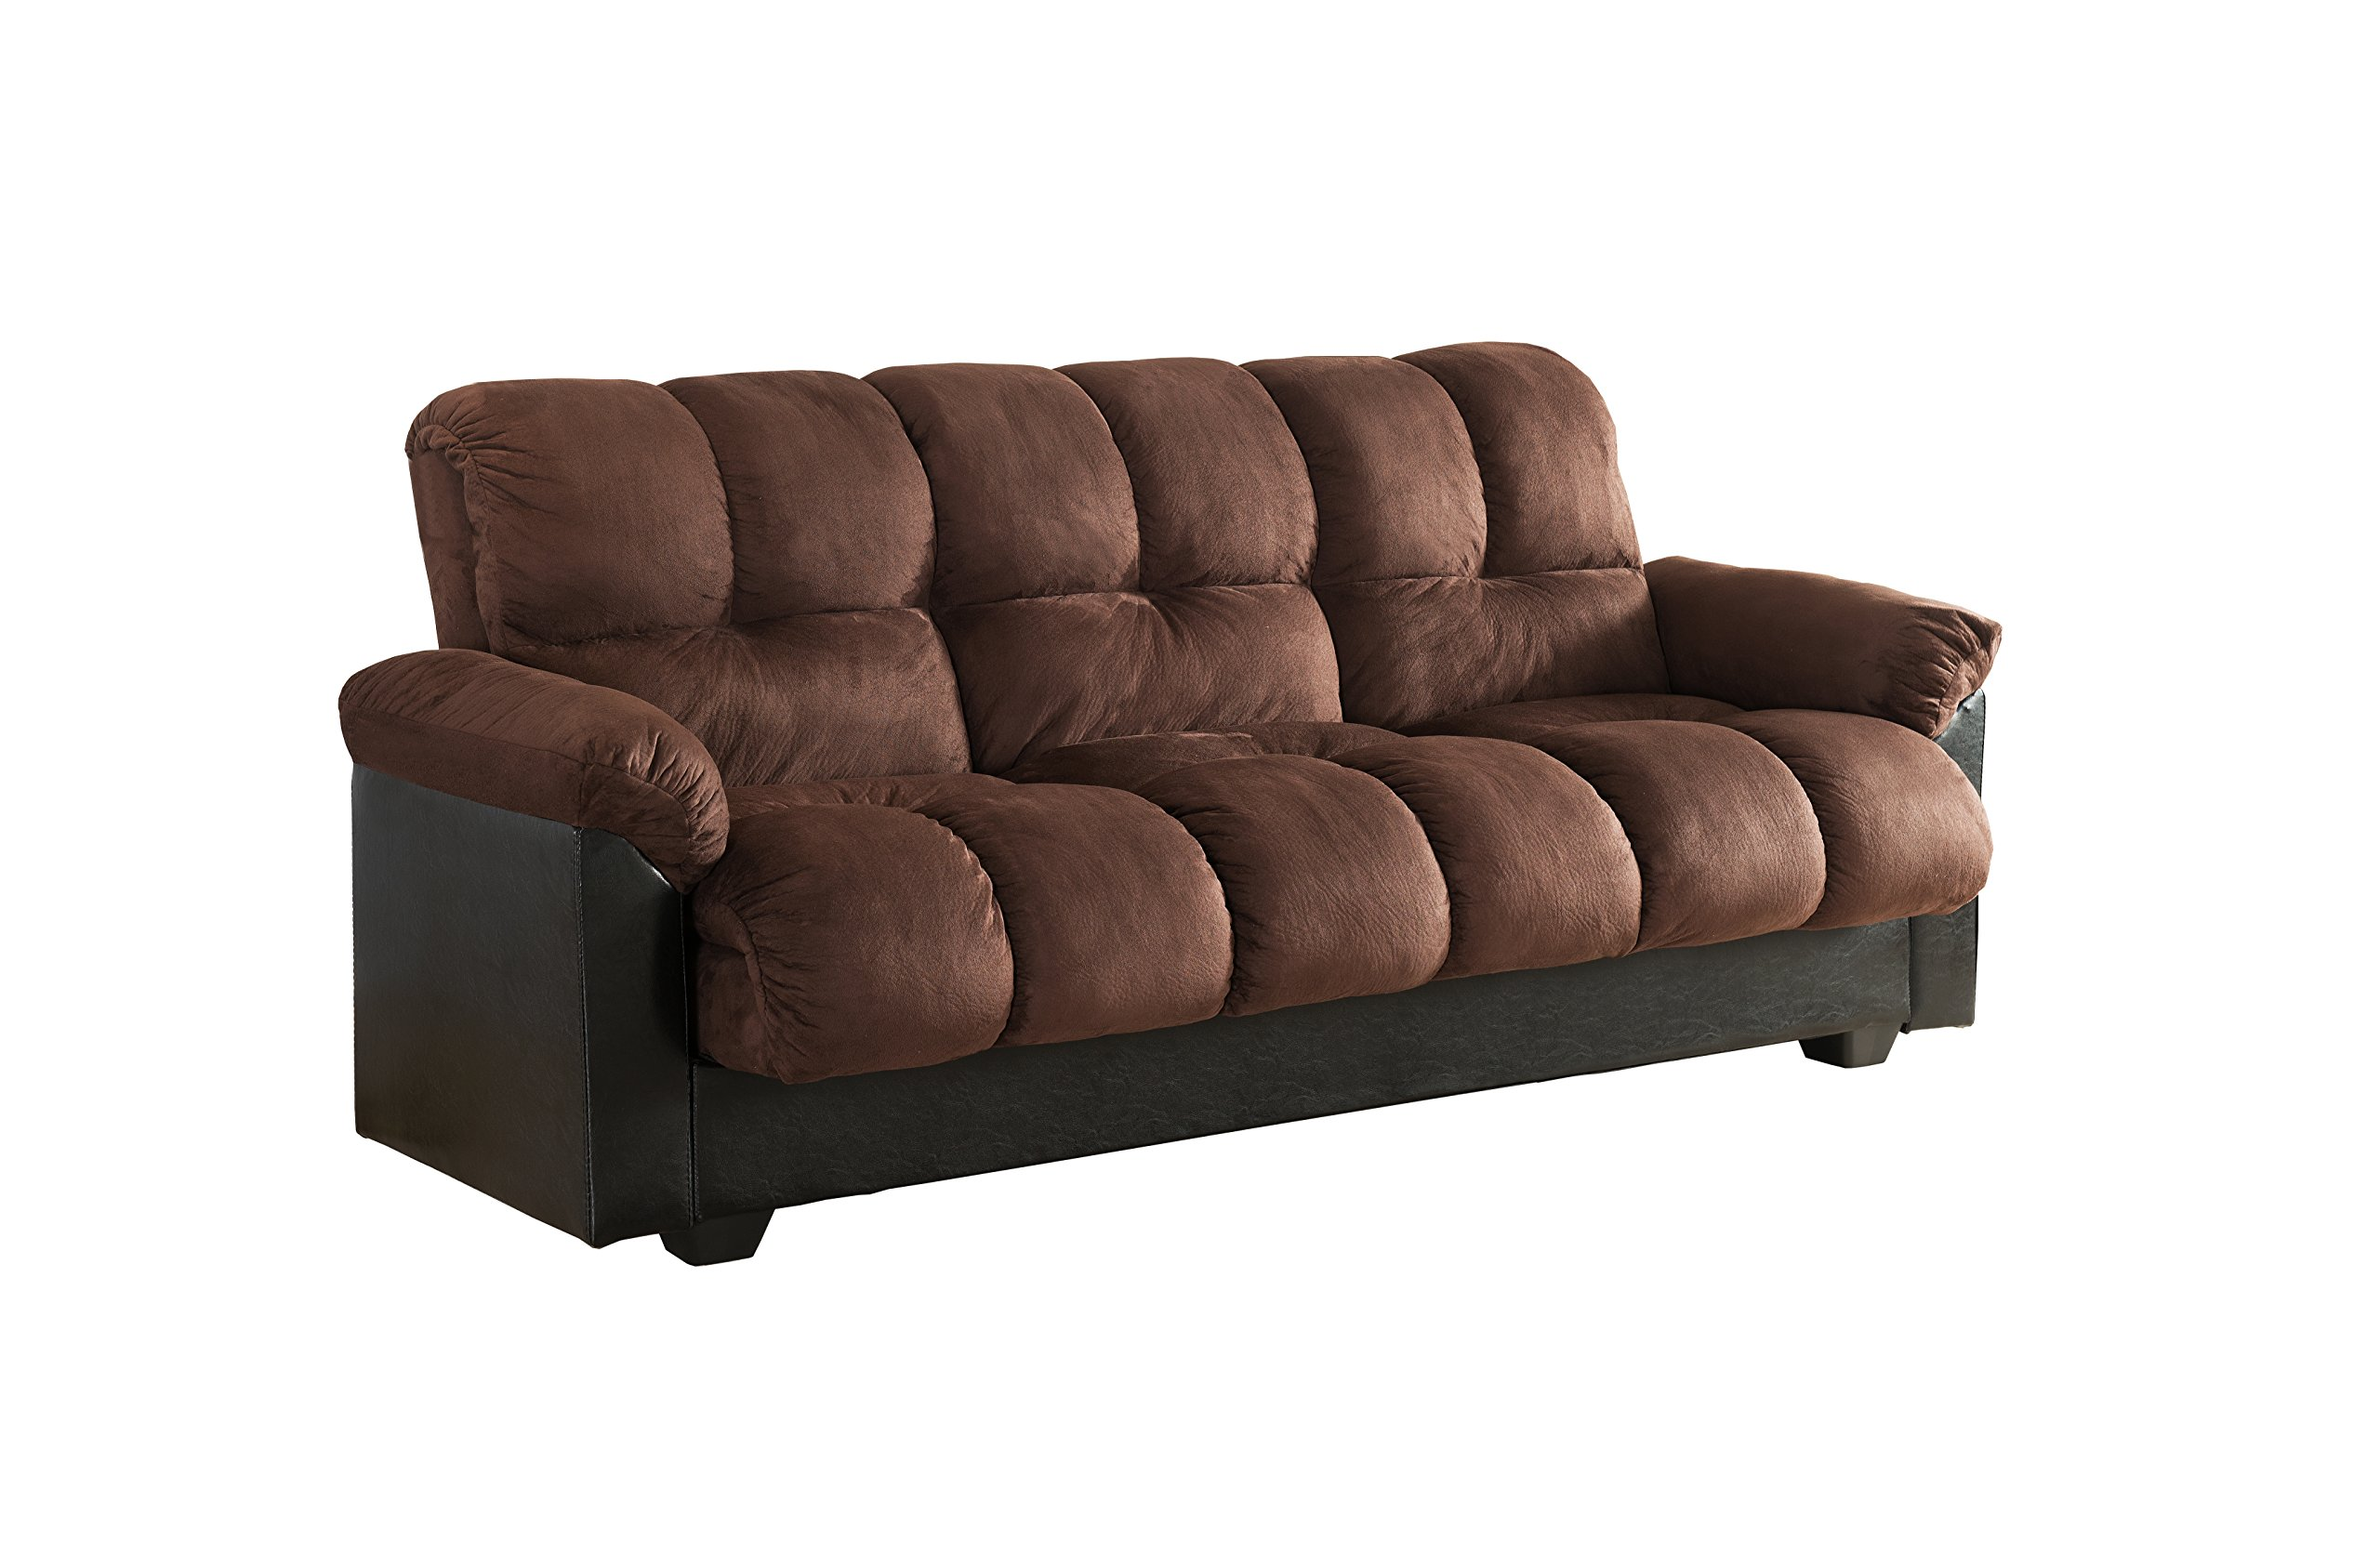 milton greens stars london storage futon sofa bed with champion fabric,  charcoal 617WHURK